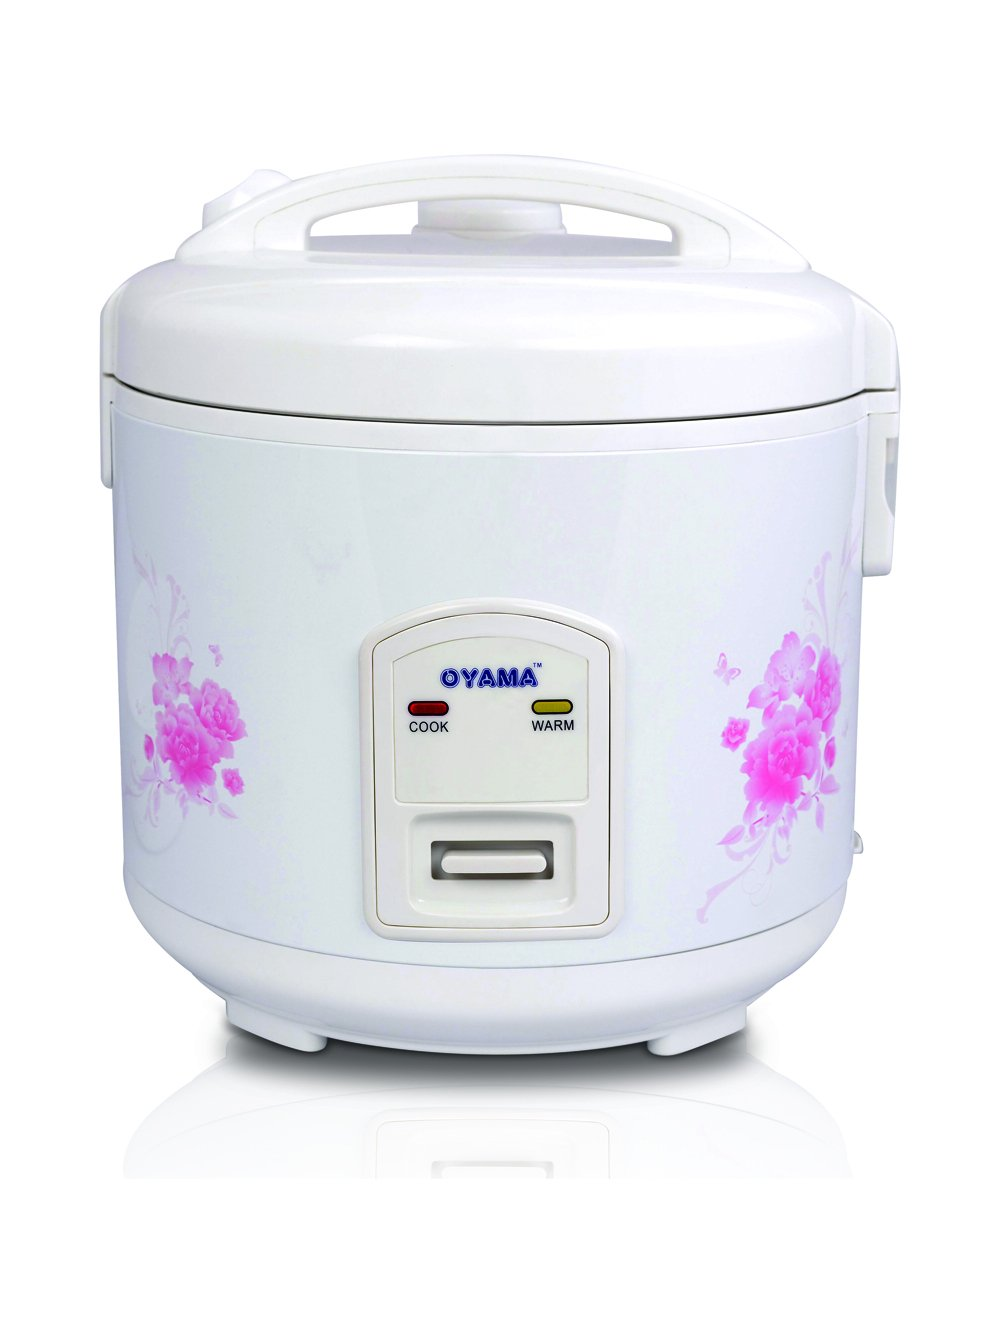 Oyama 8-cup (uncooked) Rice Cooker-Steamer-Warmer in White with Floral design (Eight cup) CNP-A15U